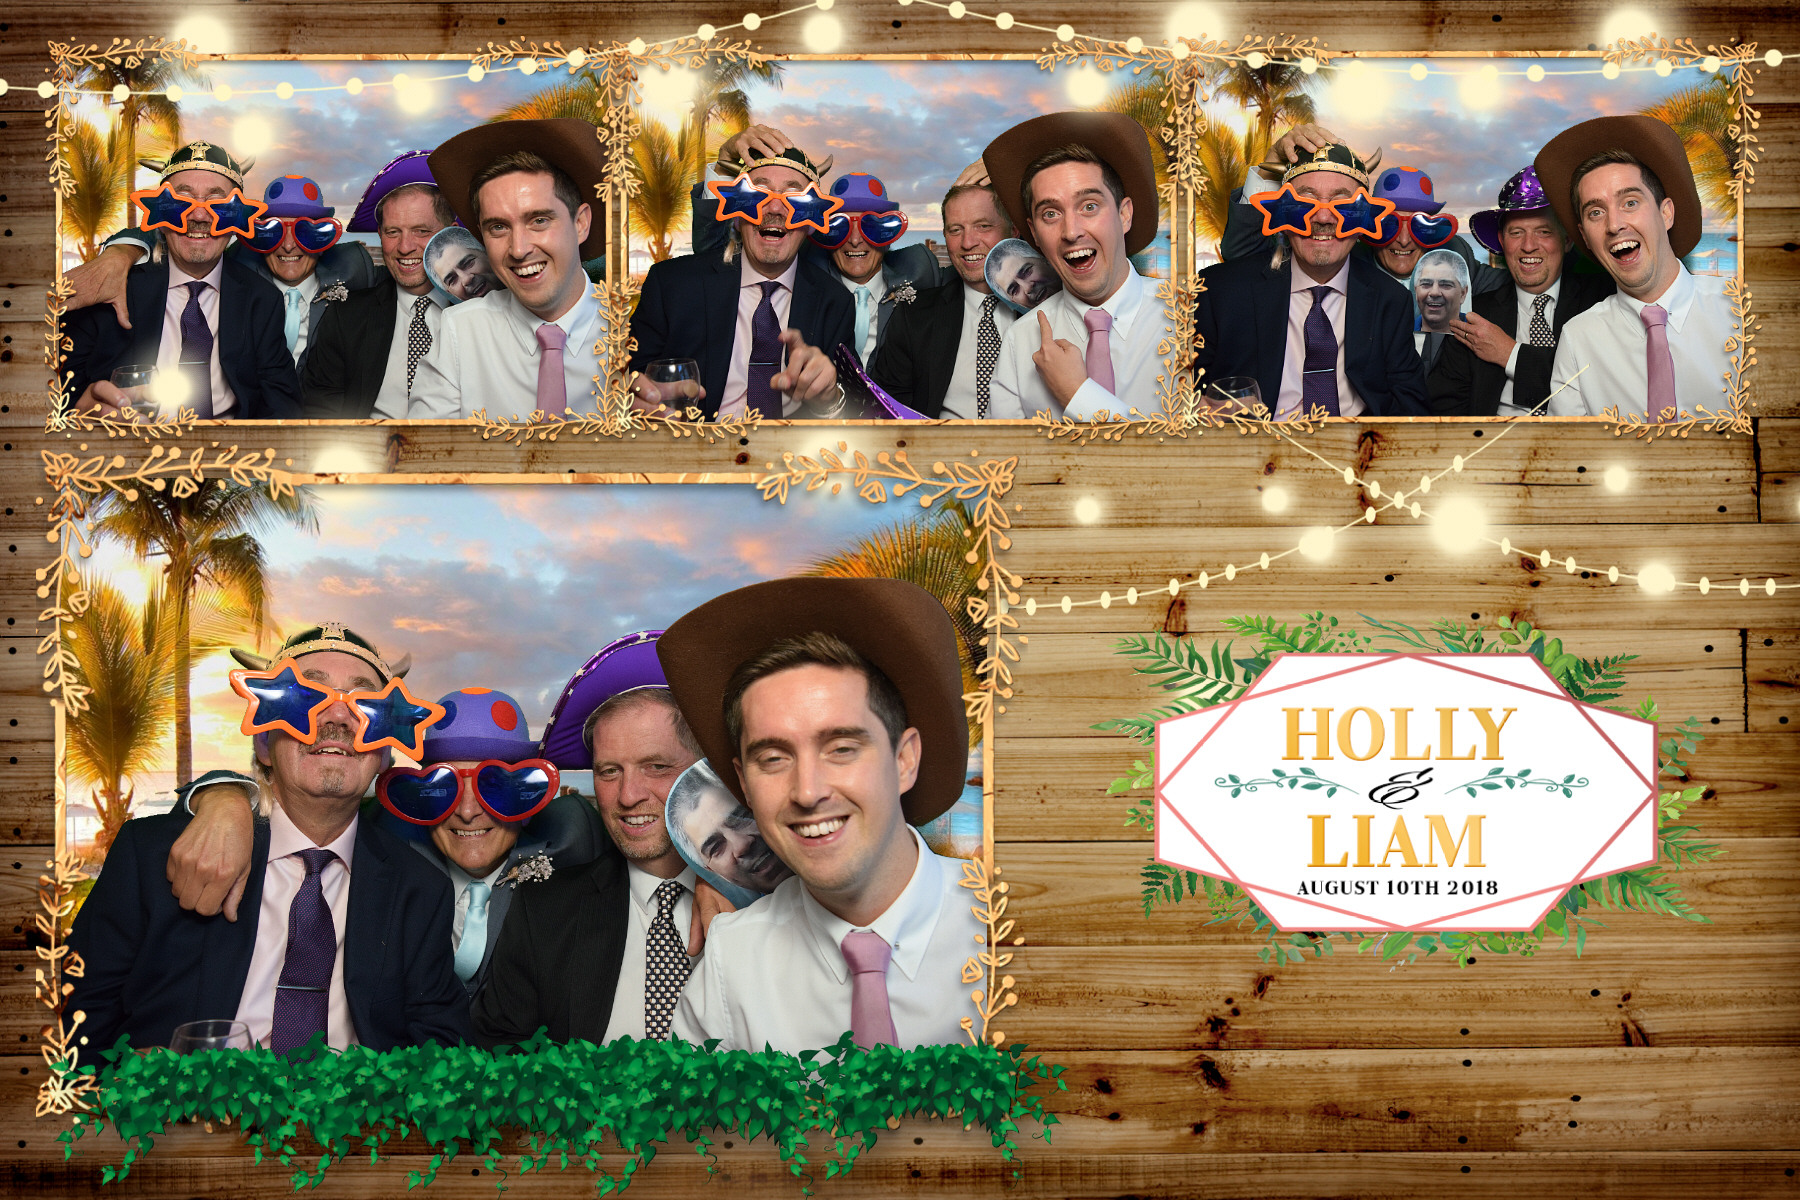 Holly and Liam - Whirlowbrook Hall Sheffield - Photo Booth